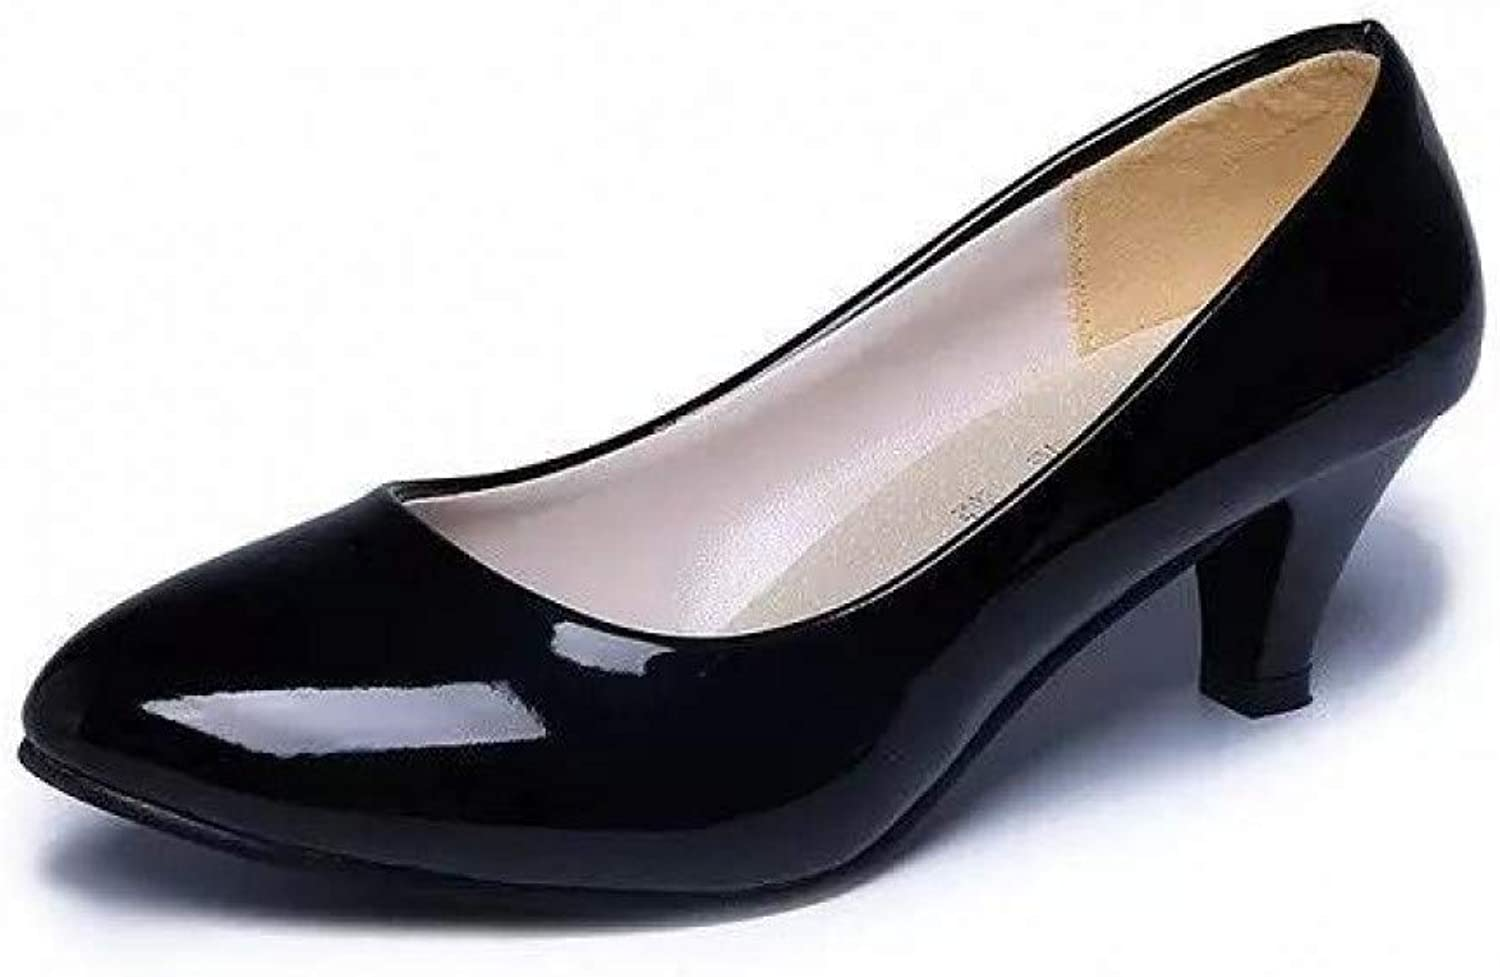 LIHUIYUN shoes Patent Leather Low Heels shoes Women Professional shoes Ladies Shallow Mouth Work shoes Elegant Ladies Office shoes